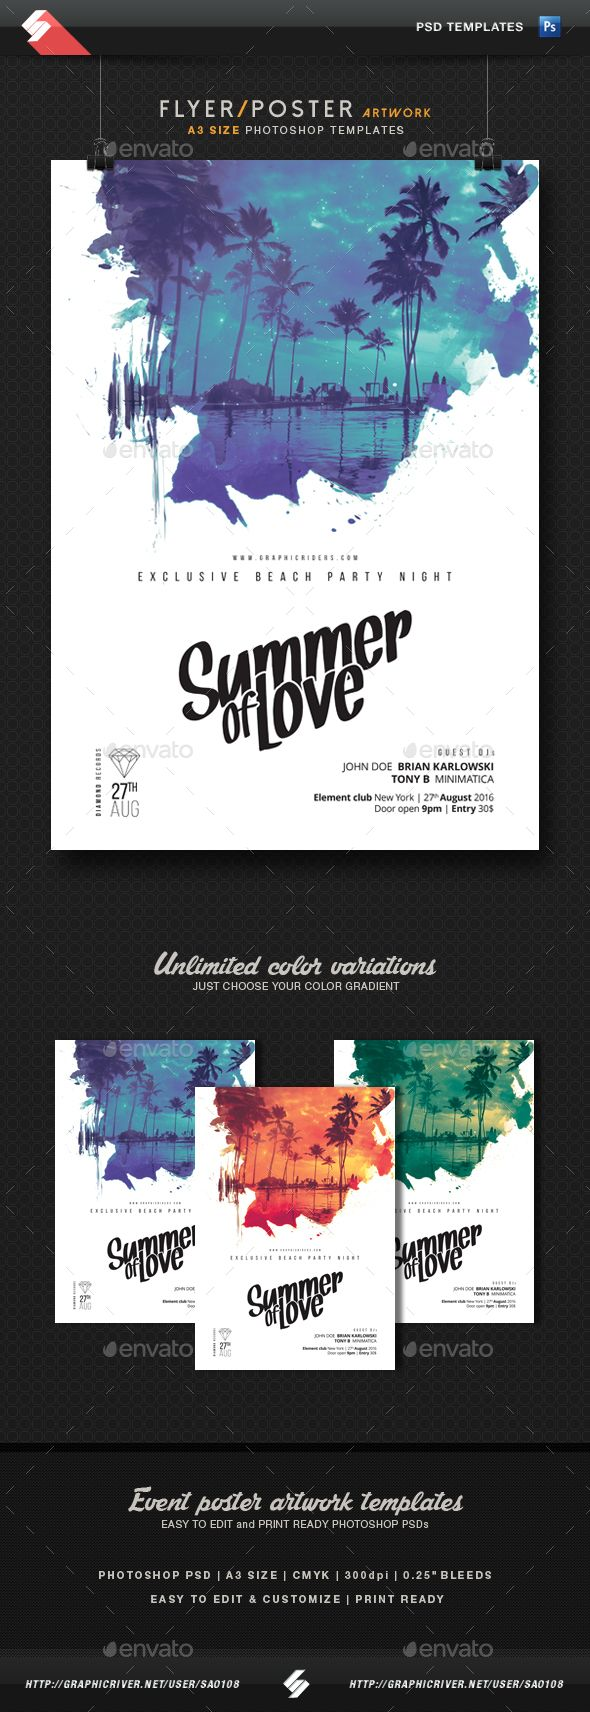 pin by bashooka web  u0026 graphic design on flyer template